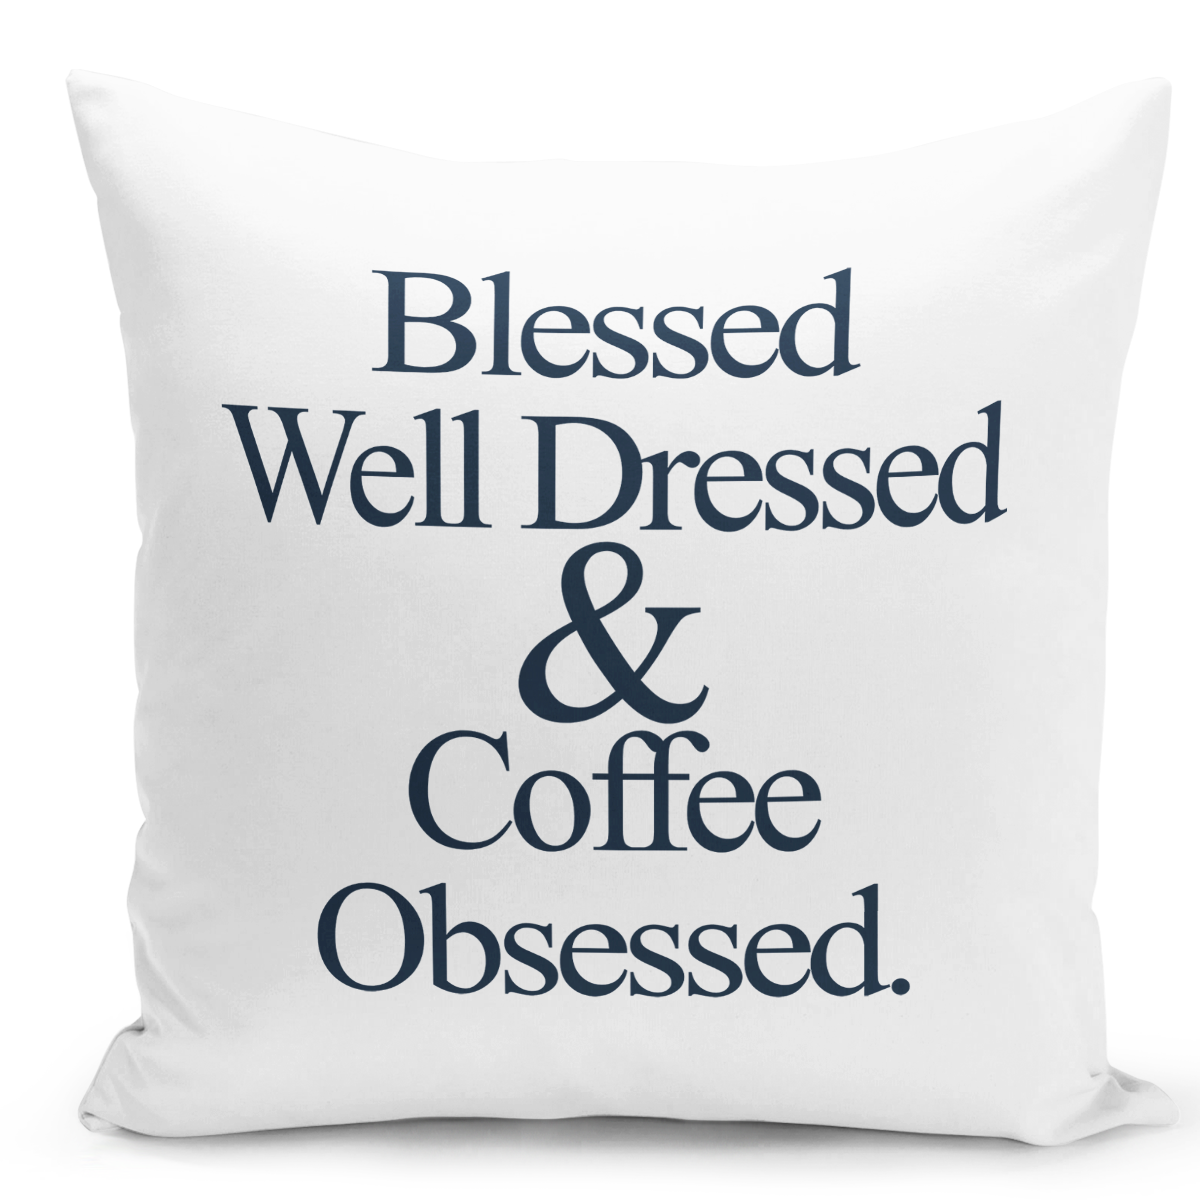 16x16-inch-Throw-Pillow-for-Home-Decor-with-Stuffing-Blessed-Well-Dressed-Coffee-Obsessed-Pillow-